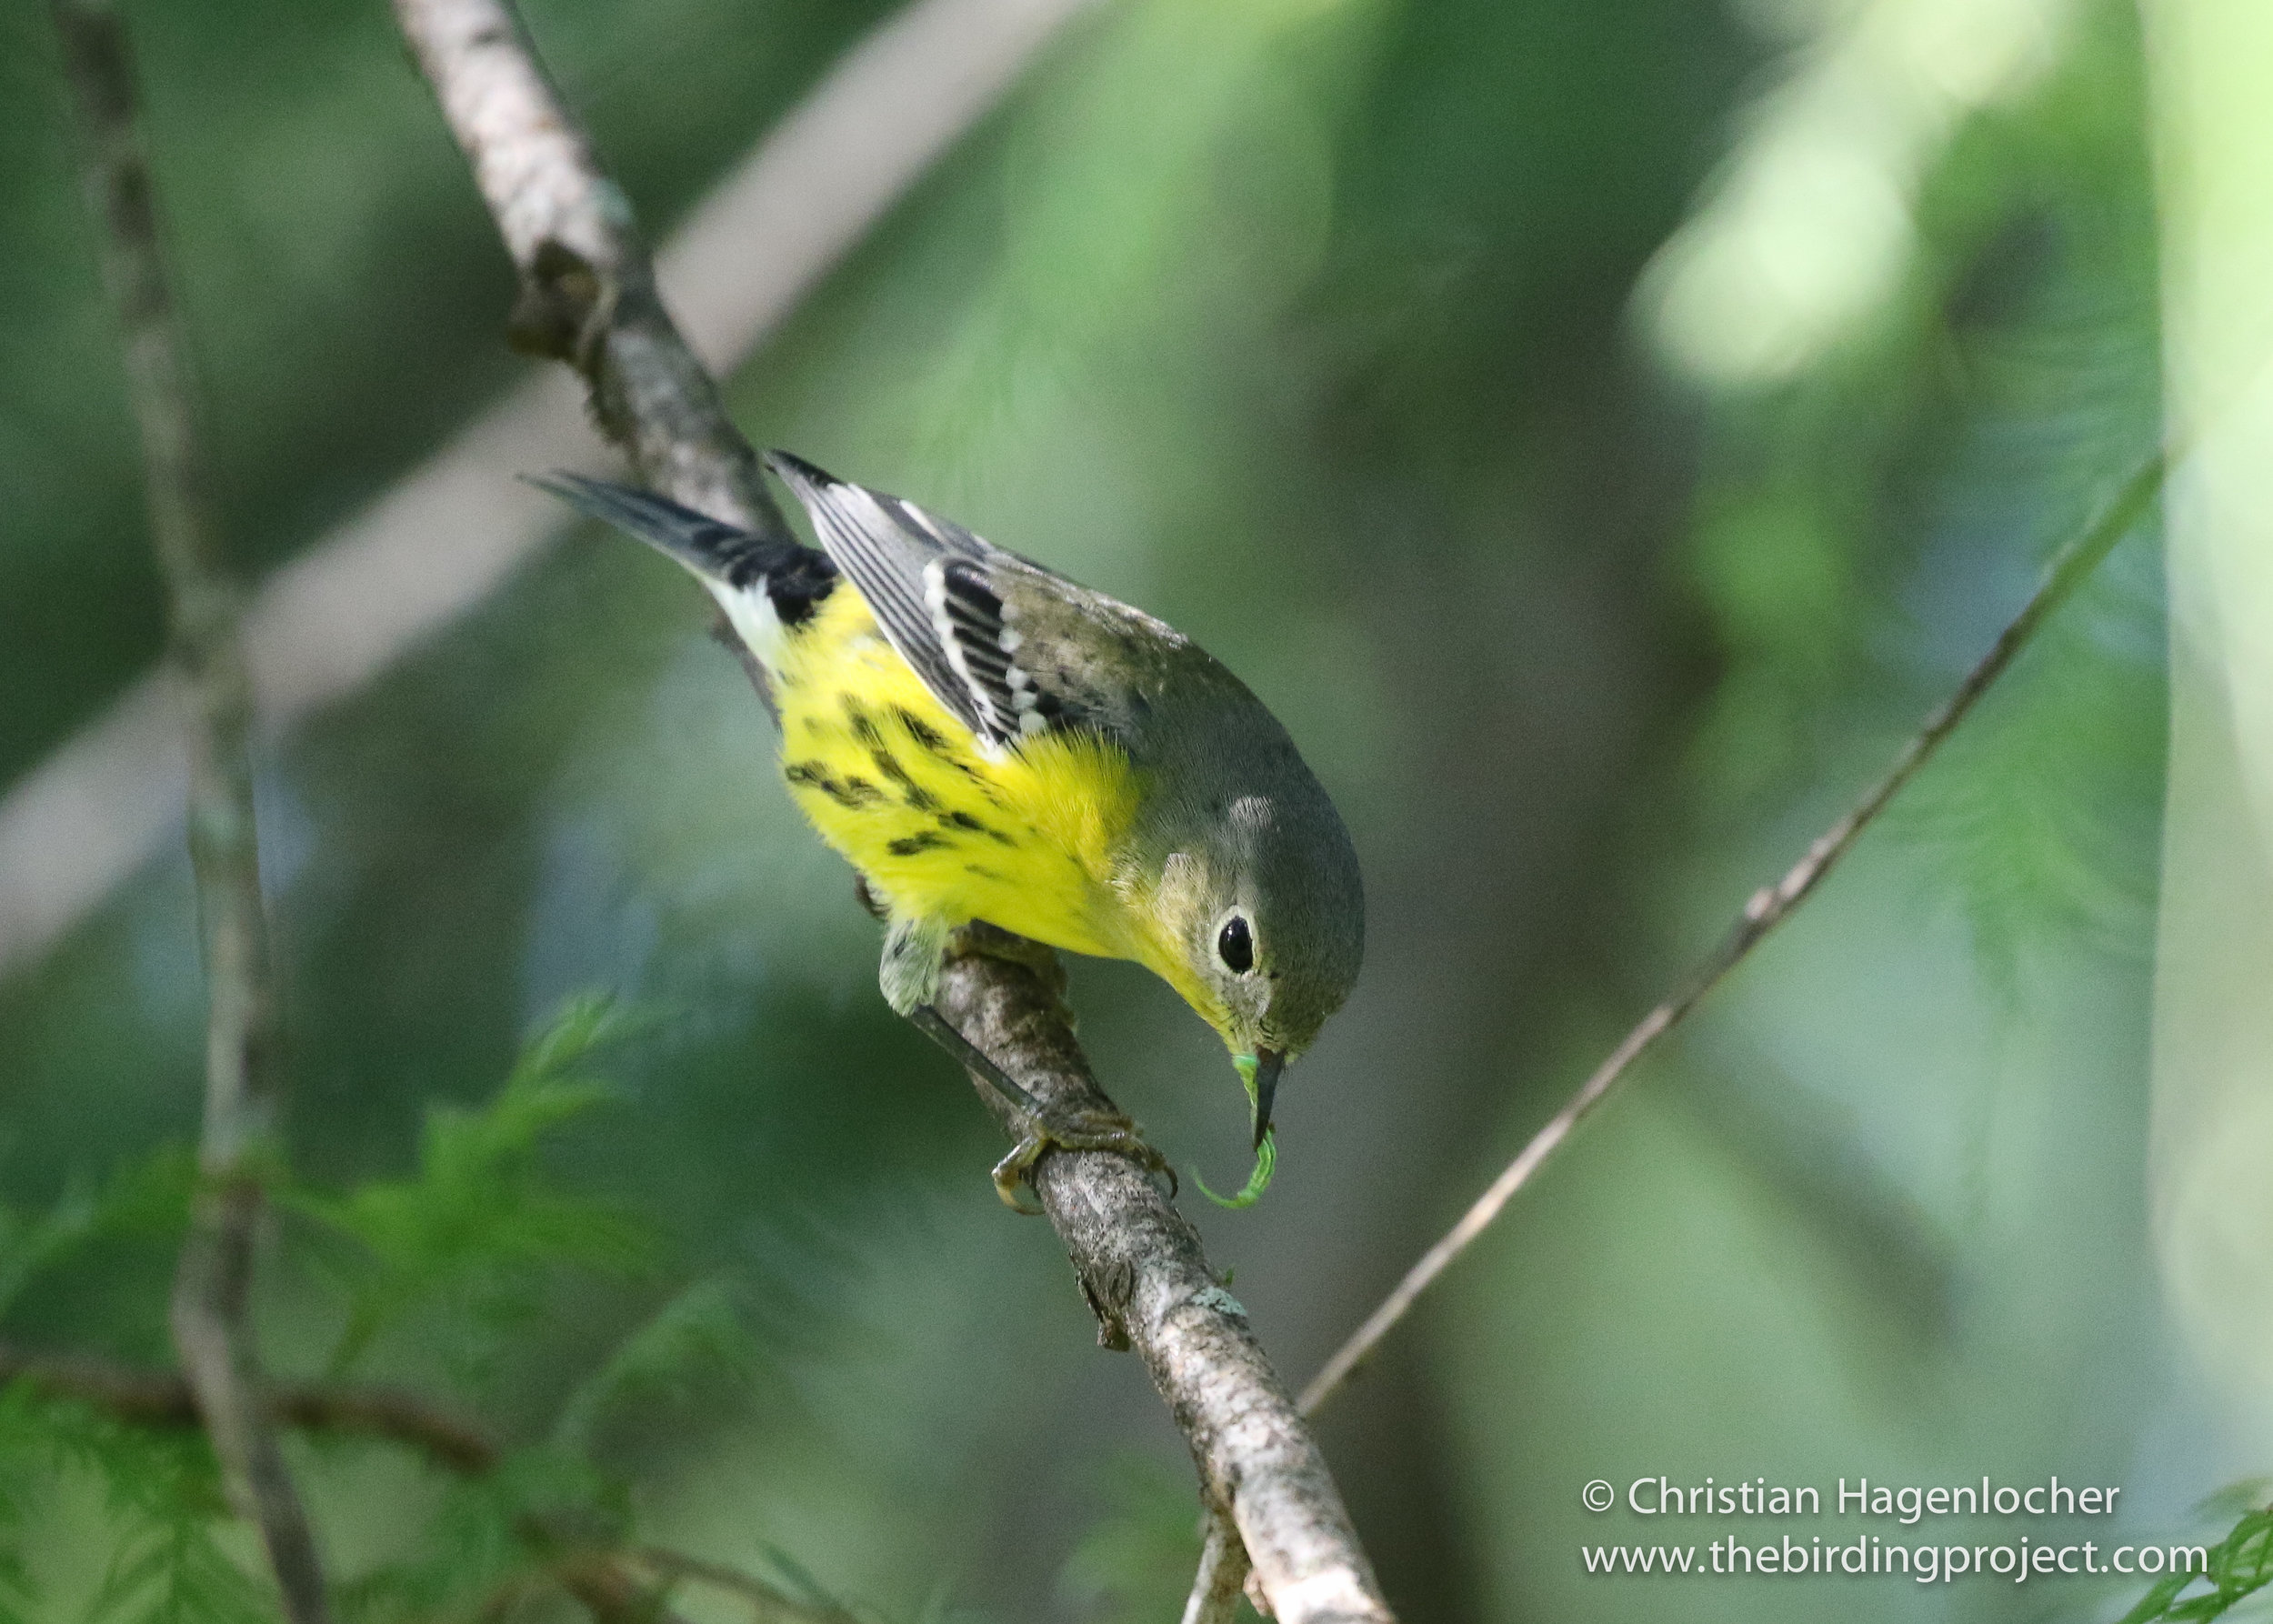 A Magnolia Warbler snags a small caterpillar from a crevice along a Cypress branch.